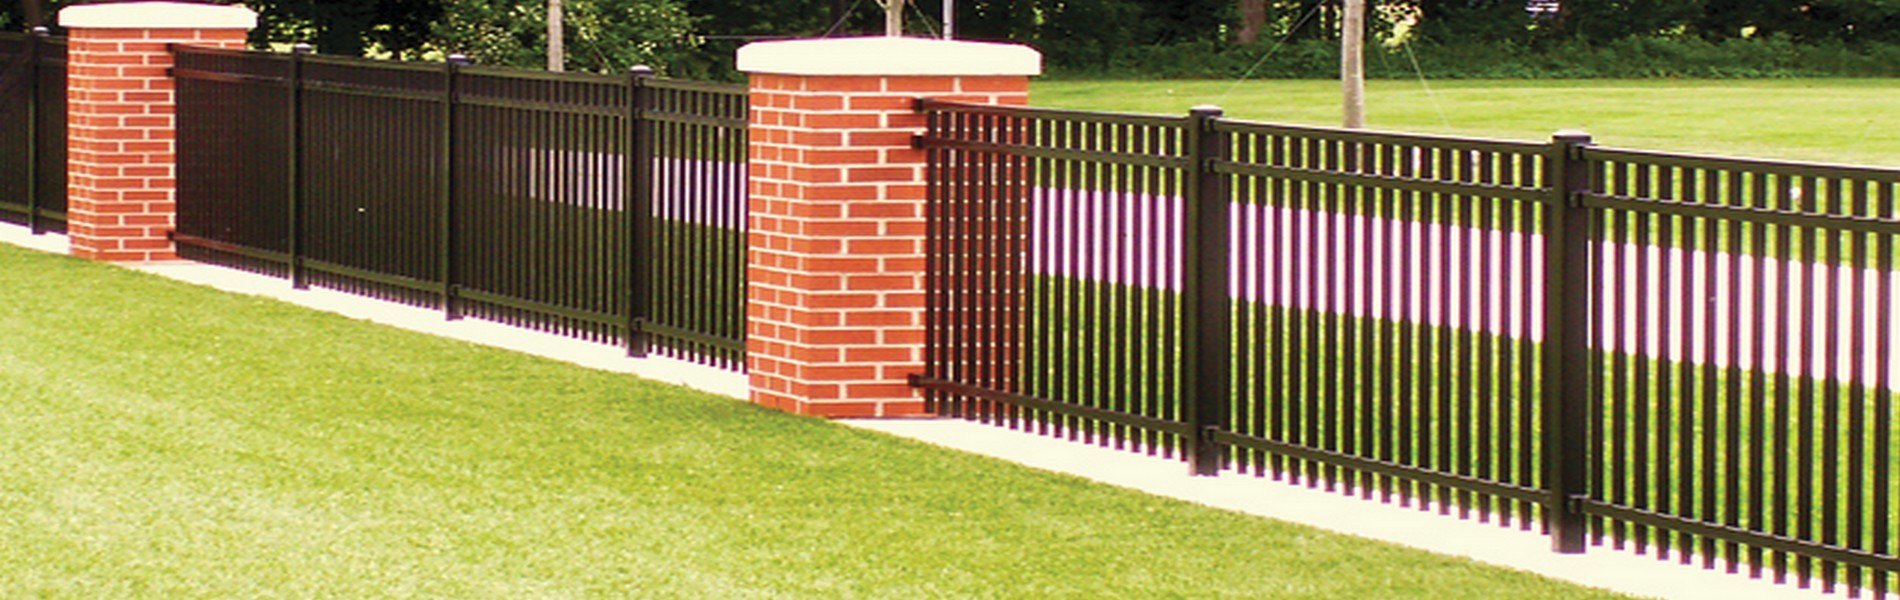 Get your grand rapids fence from Cedar Springs Fence